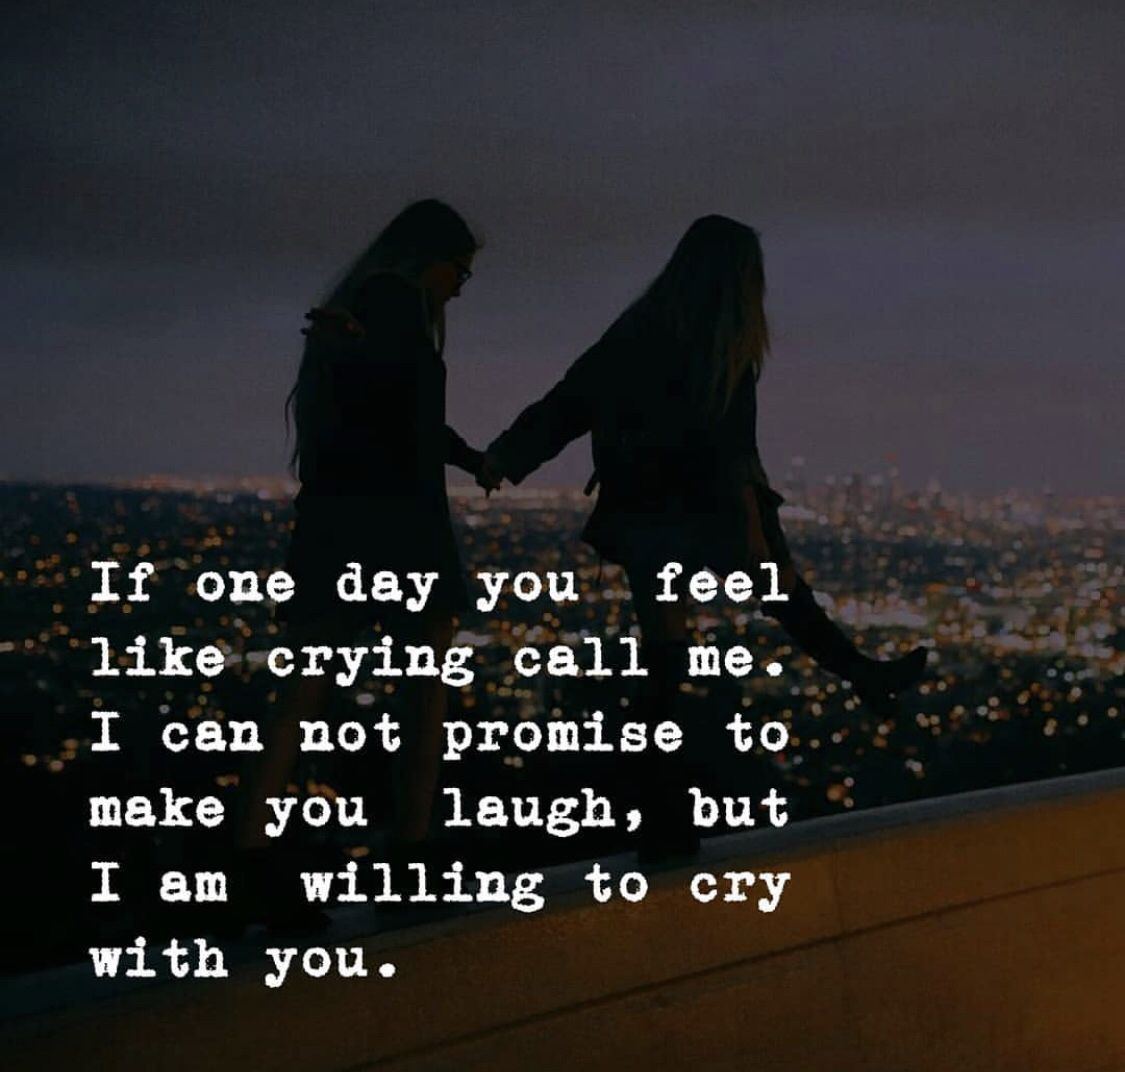 Best Friend Goals Funny Travel Quotes Feel Like Crying Smile Quotes